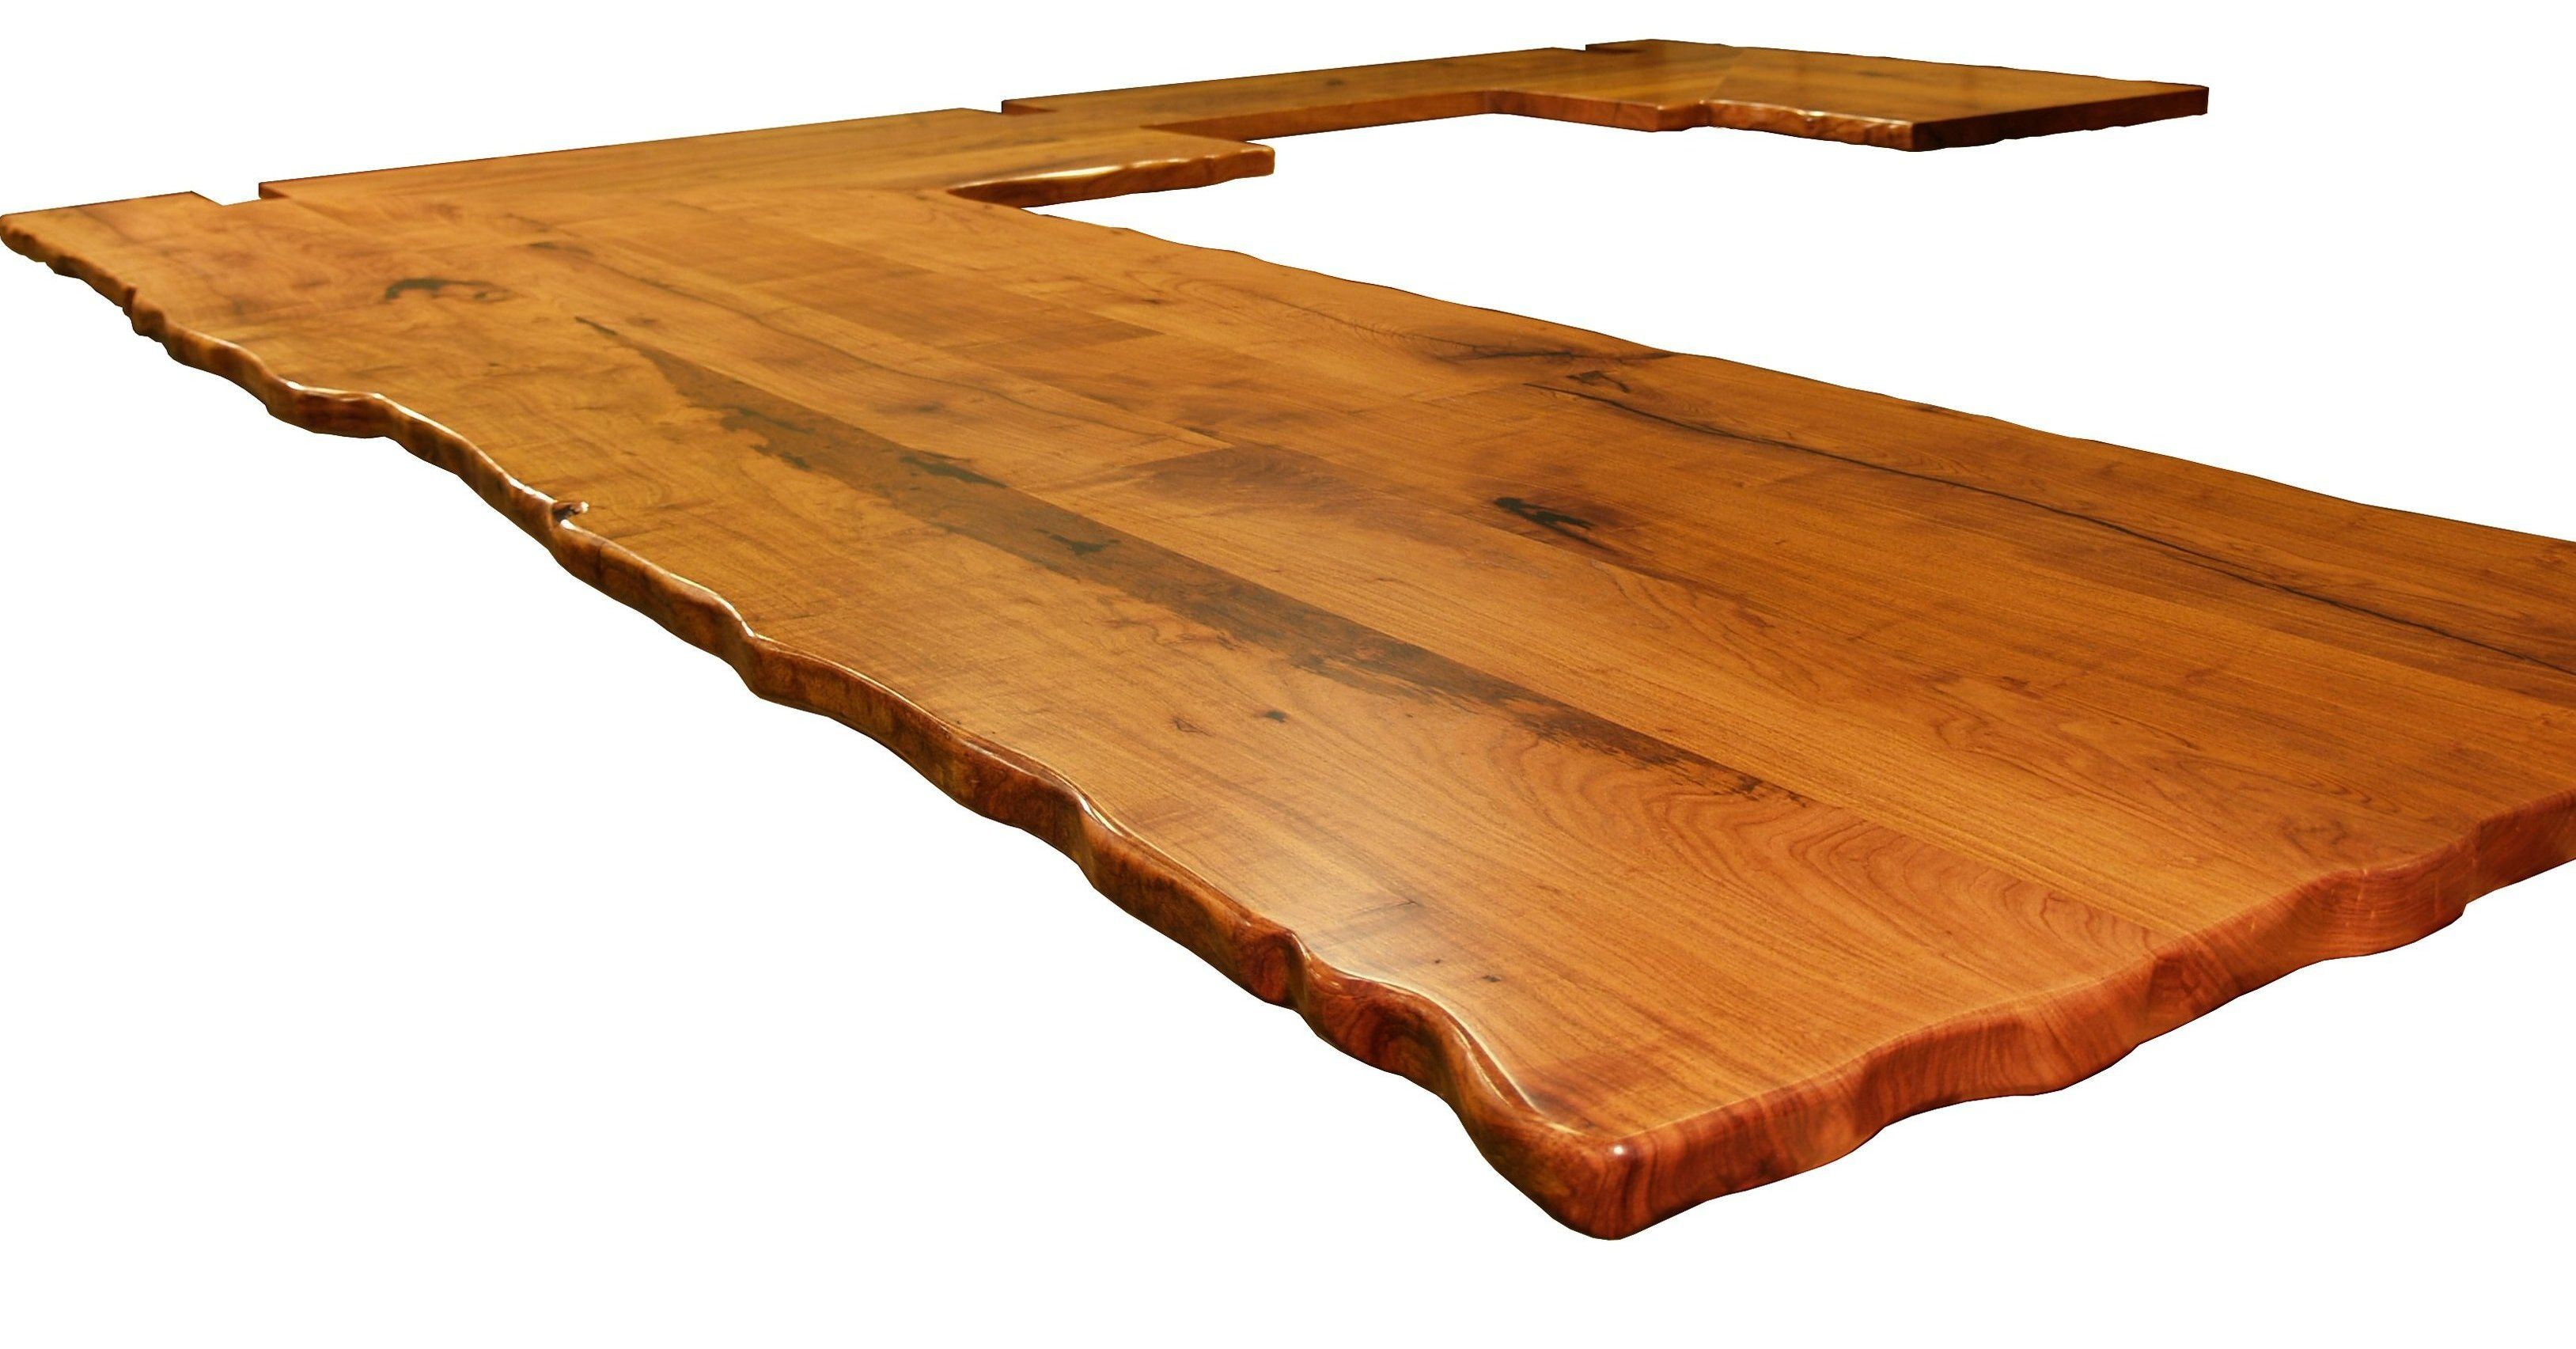 tops and custom a edges countertops wane finish on table with oil natural slab citrus pecan top wood tung designing